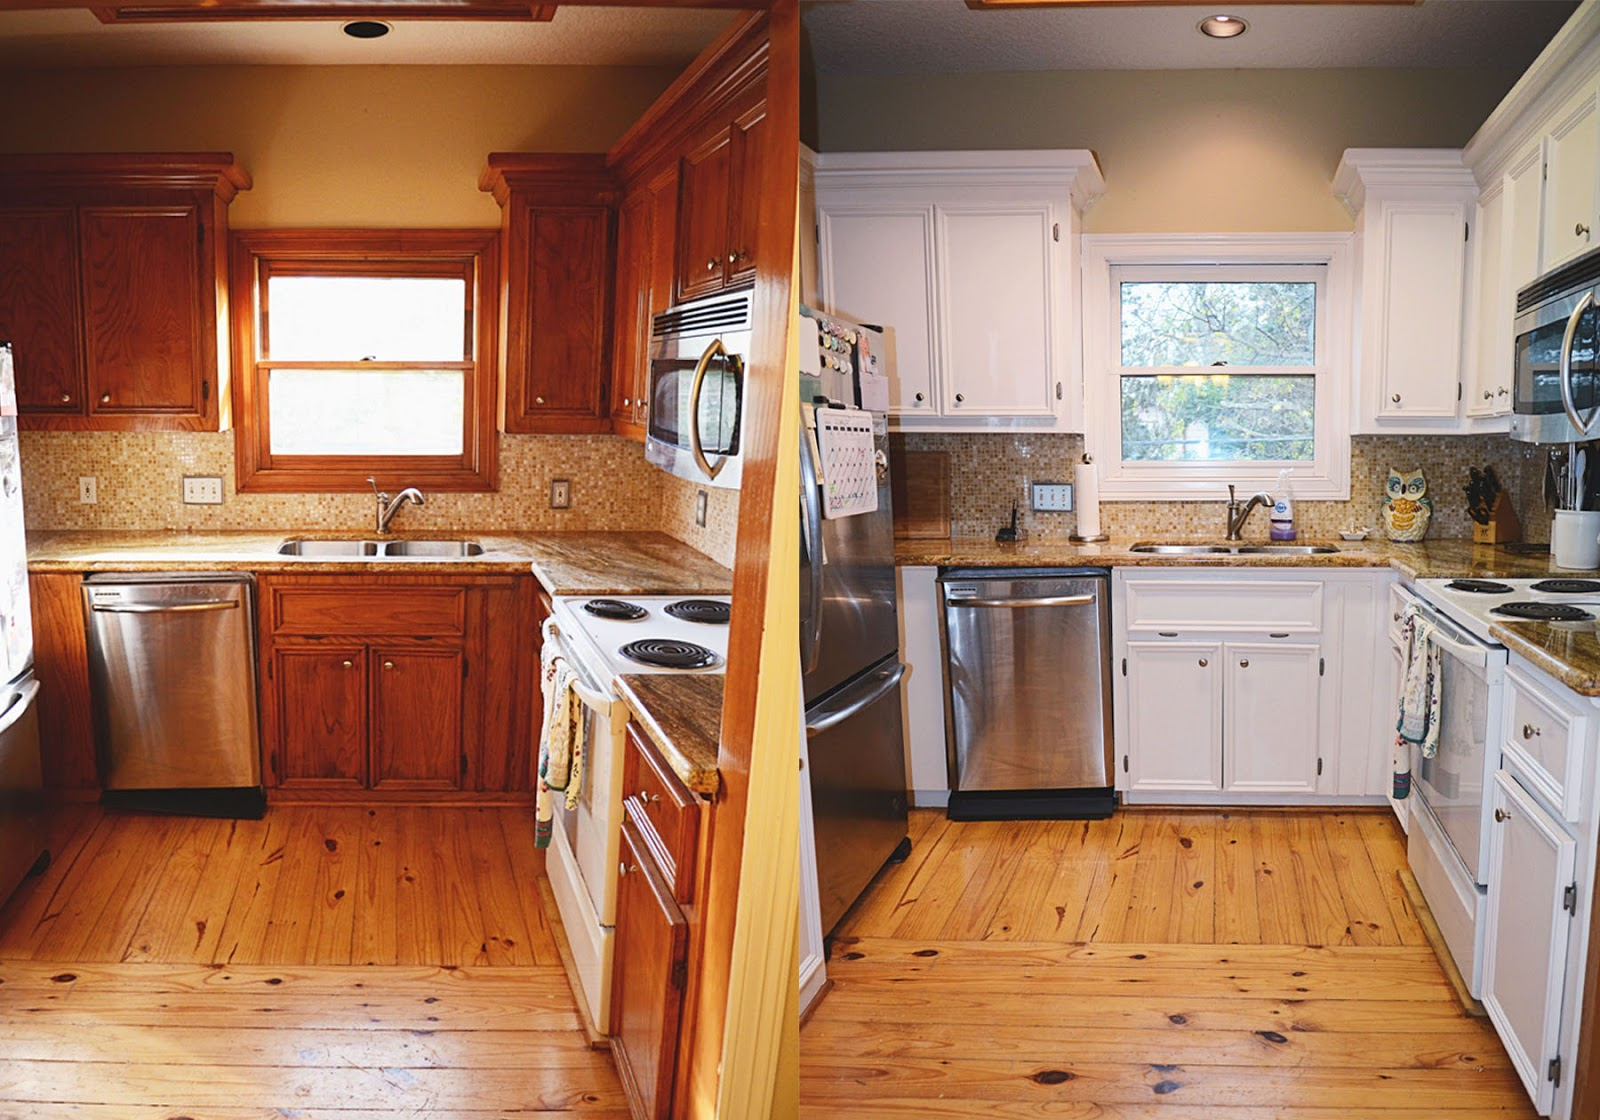 Kitchen RustOleum CabiTransformations Before and After